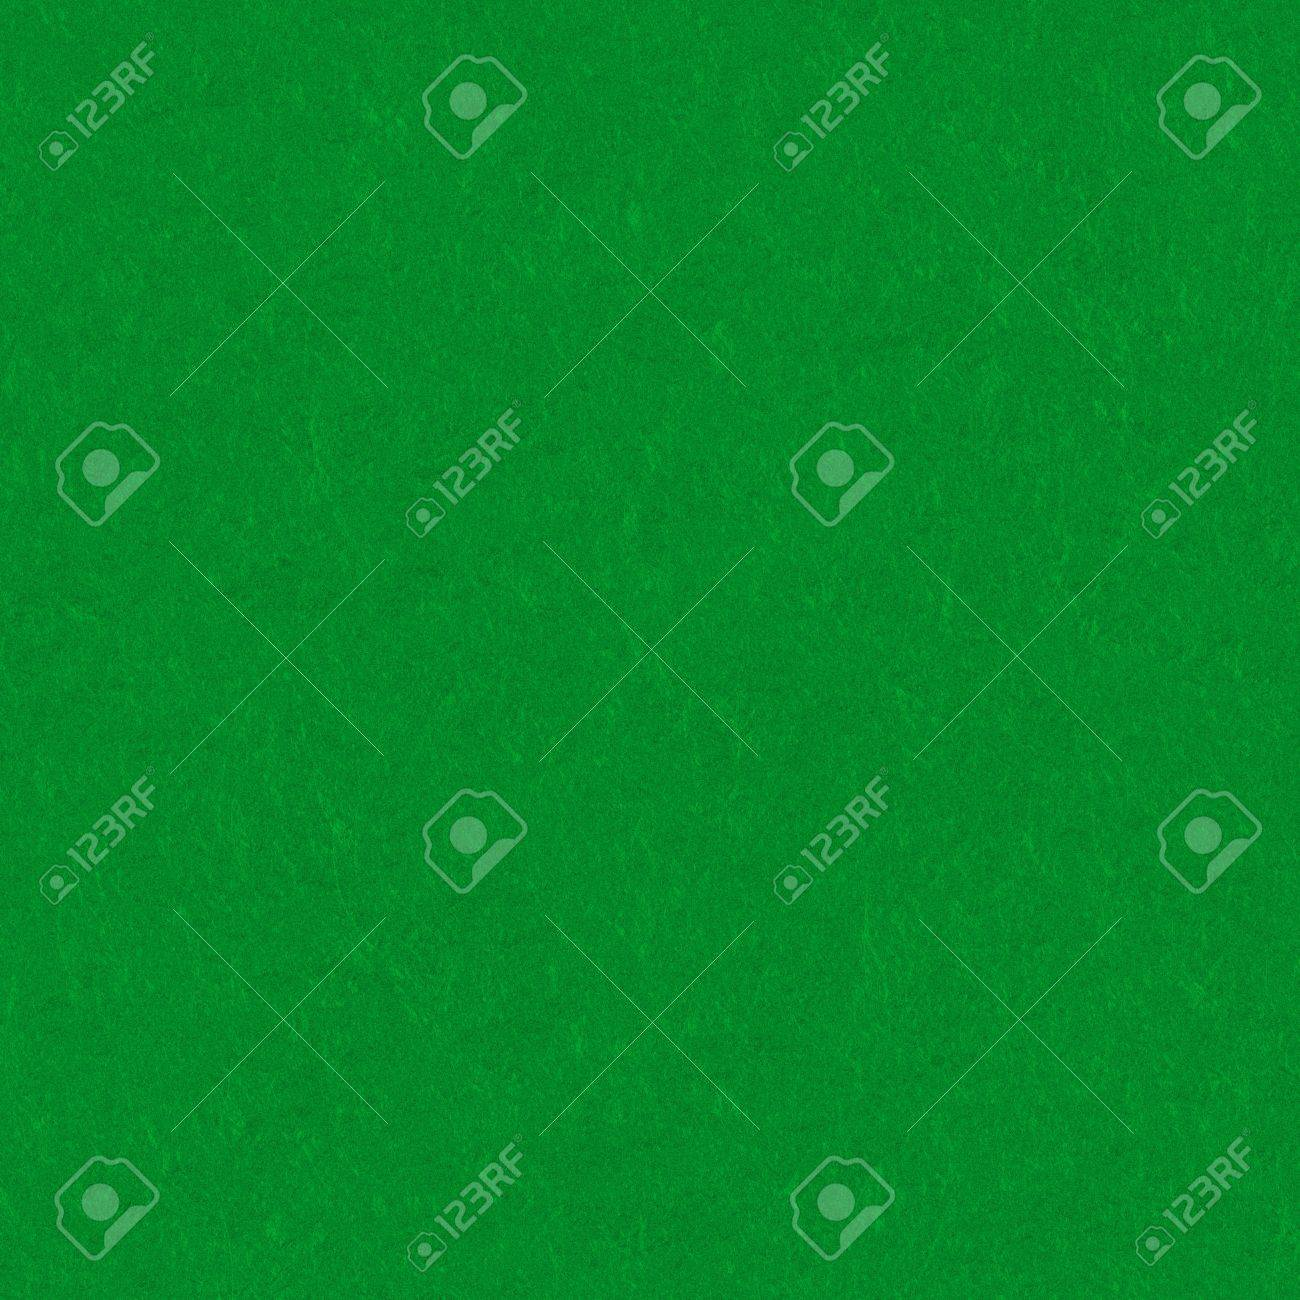 Computer Generated Texture Of Green Worn Shabby Poker Or Pool Table Felt,  With Lighter And